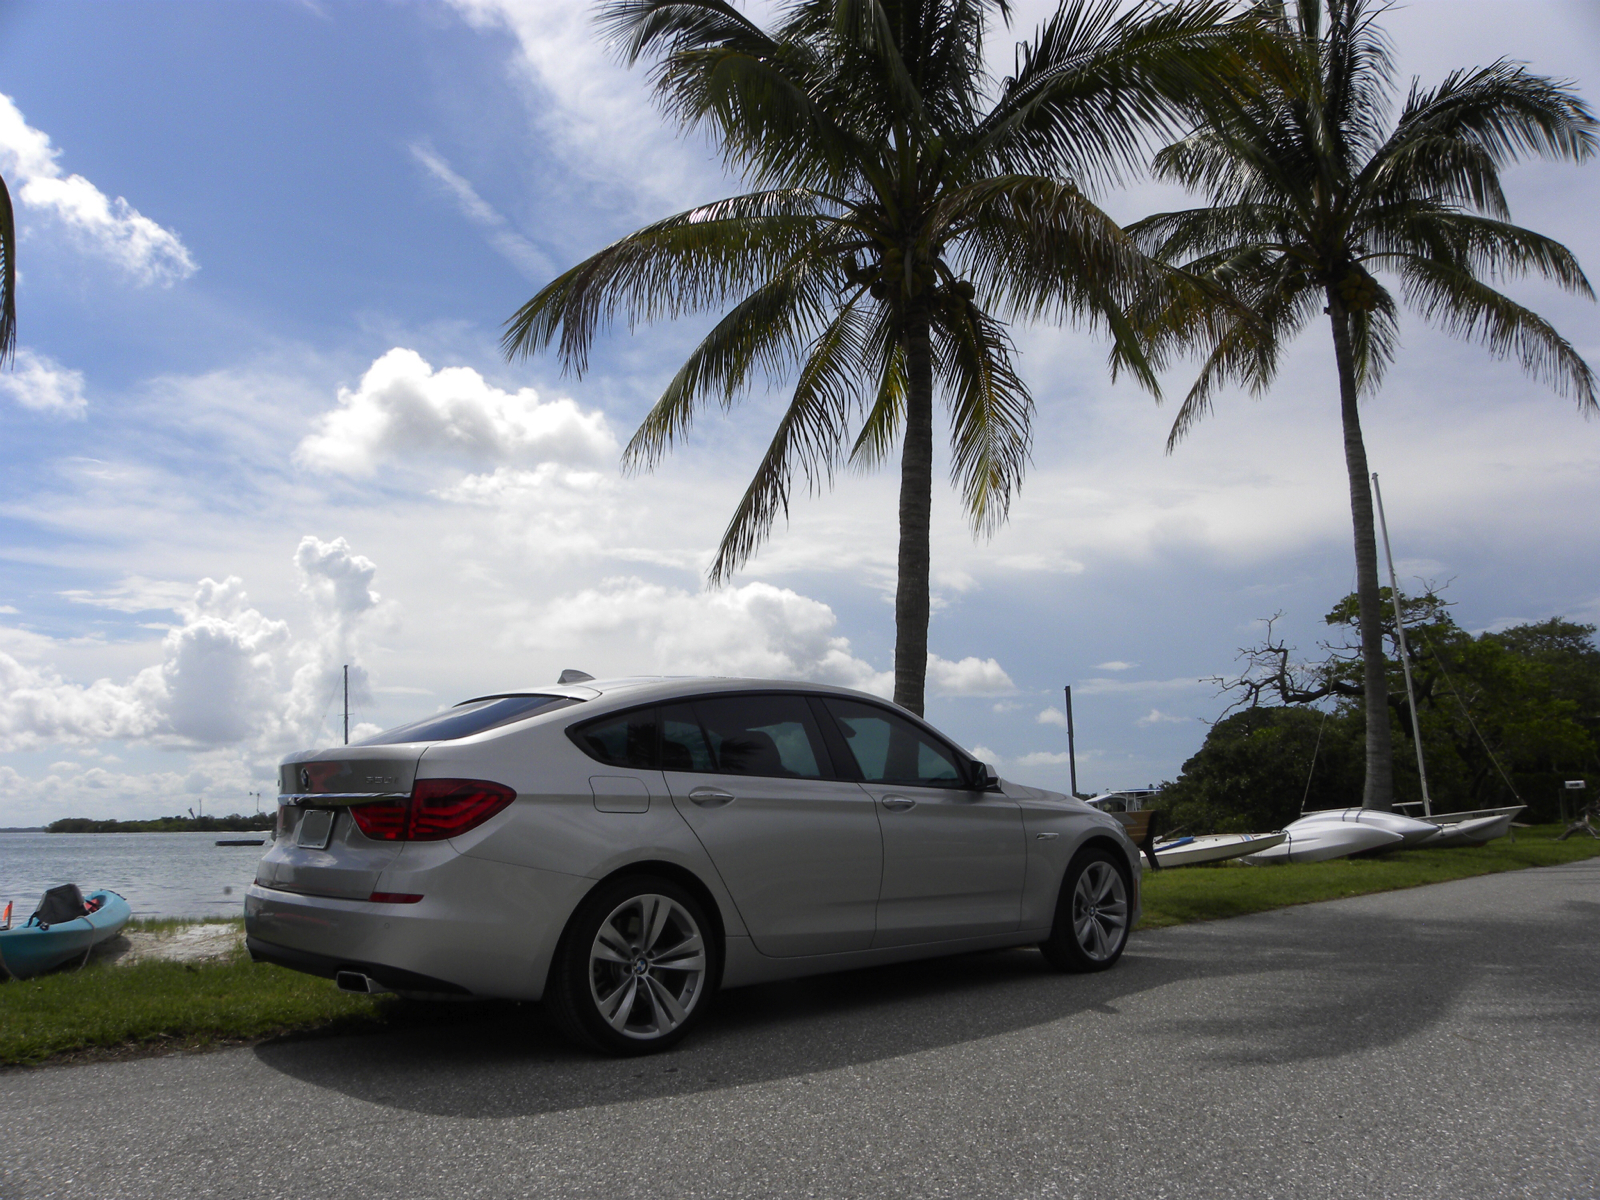 bmw 550i gt owner review 29